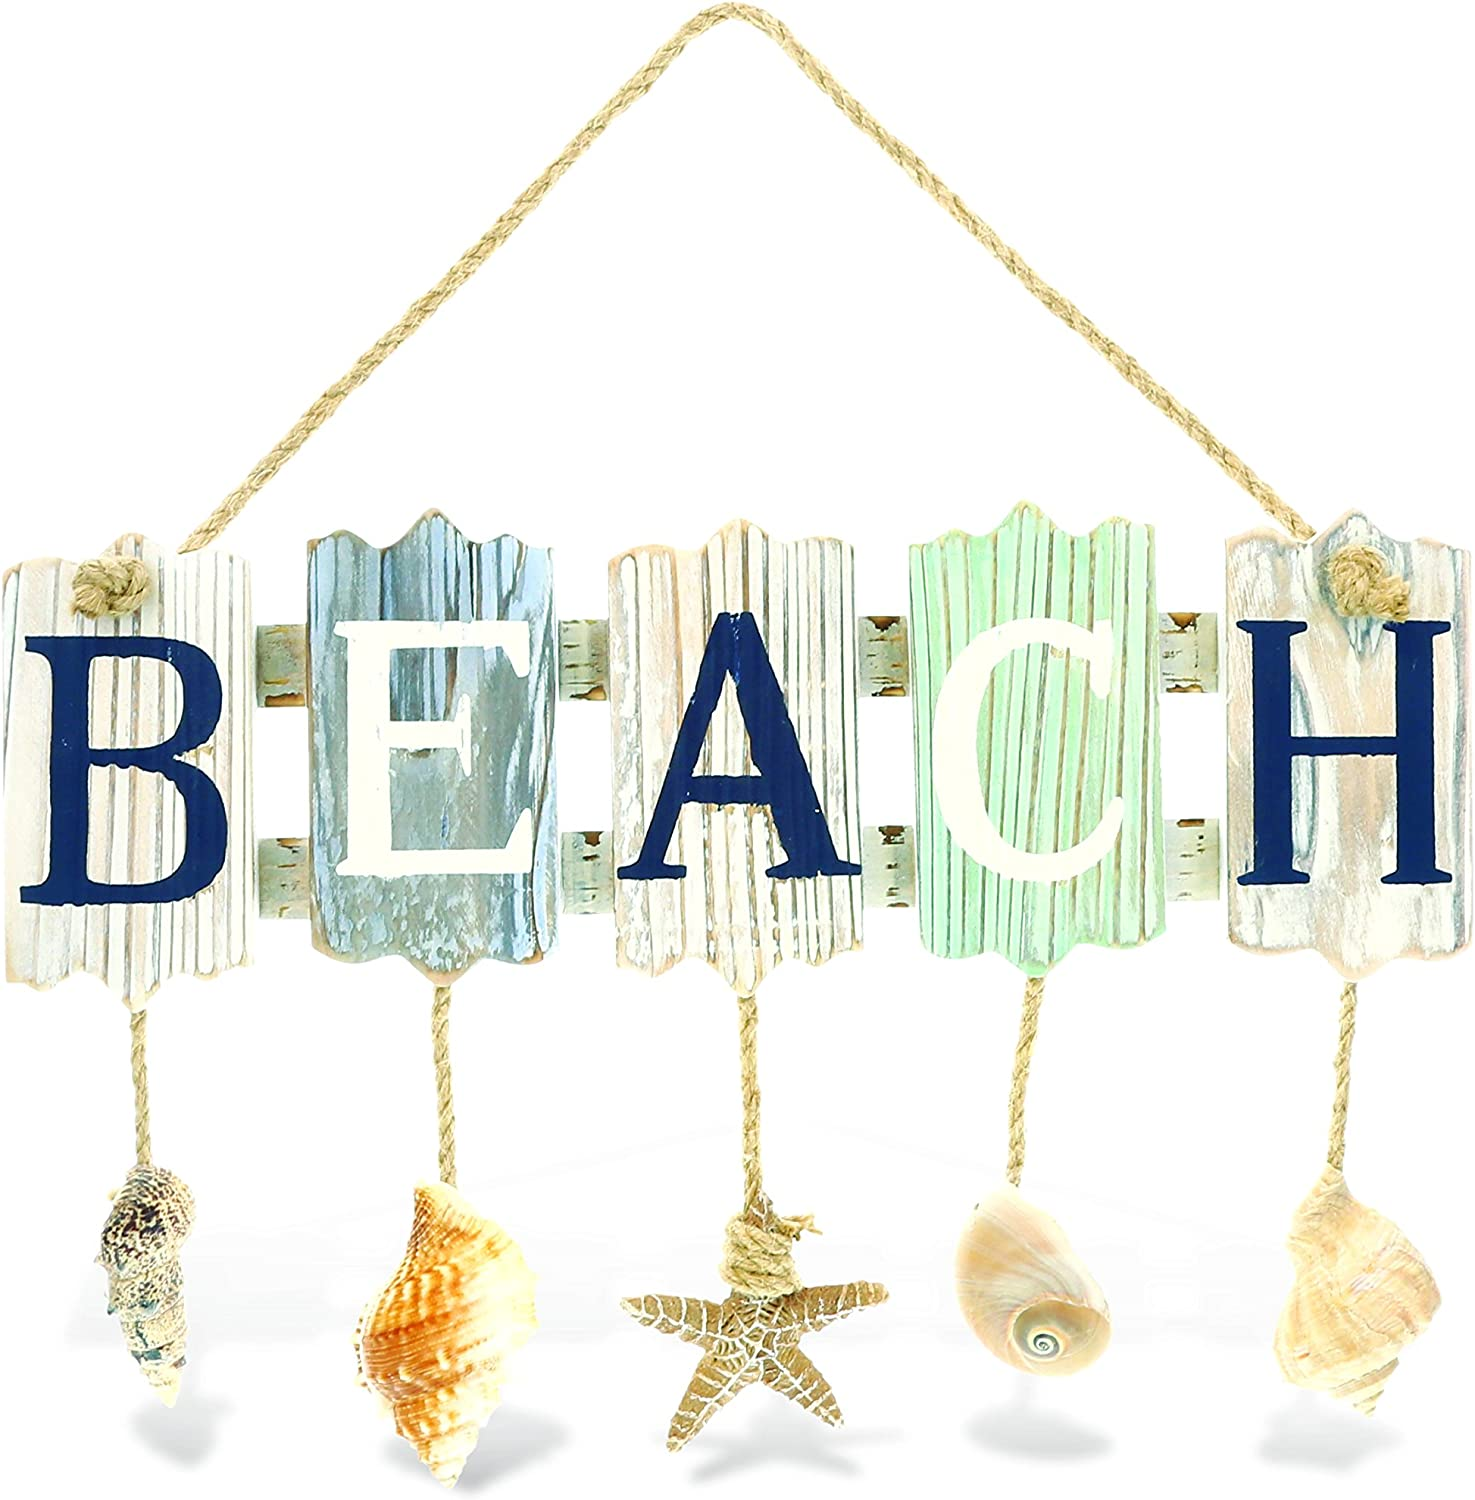 "CoTa Global Aquarius Beach Sea Shells Wooden Rope Sign, 13.7″ x 8.5"" Indoor Outdoor Coastal Beach Themed Wall Décor Hanging Handcrafted Windchime - Home Accent Kitchen Decoration Unique Souvenir"